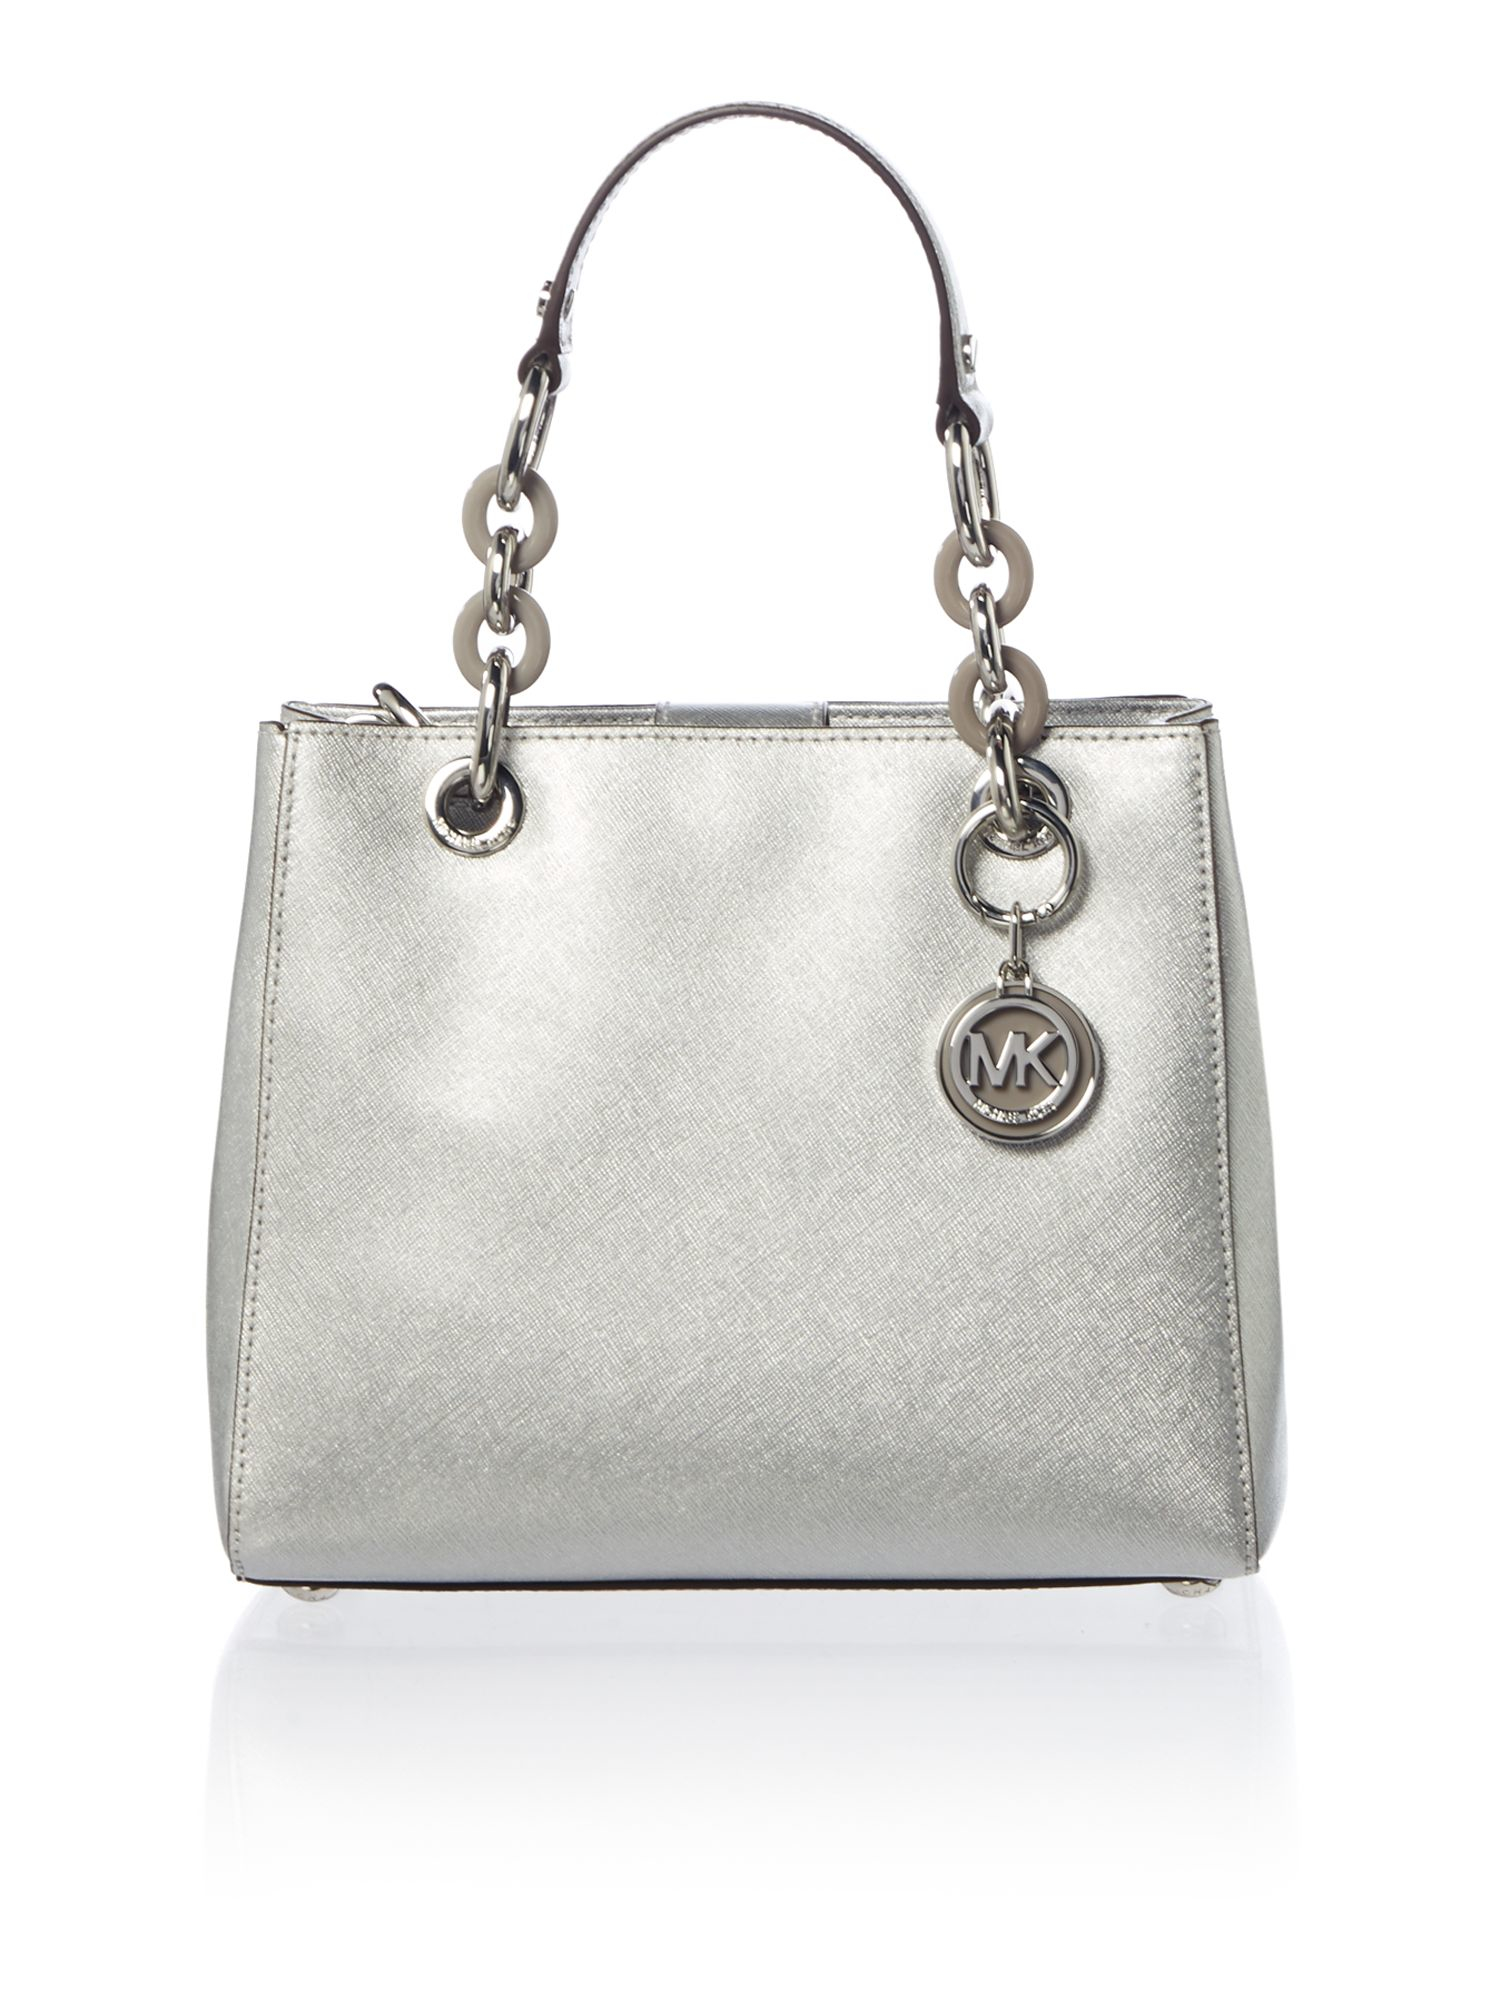 8f2a62d10320 Lyst - Michael Kors Cynthia Silver Small Satchel Bag in Natural